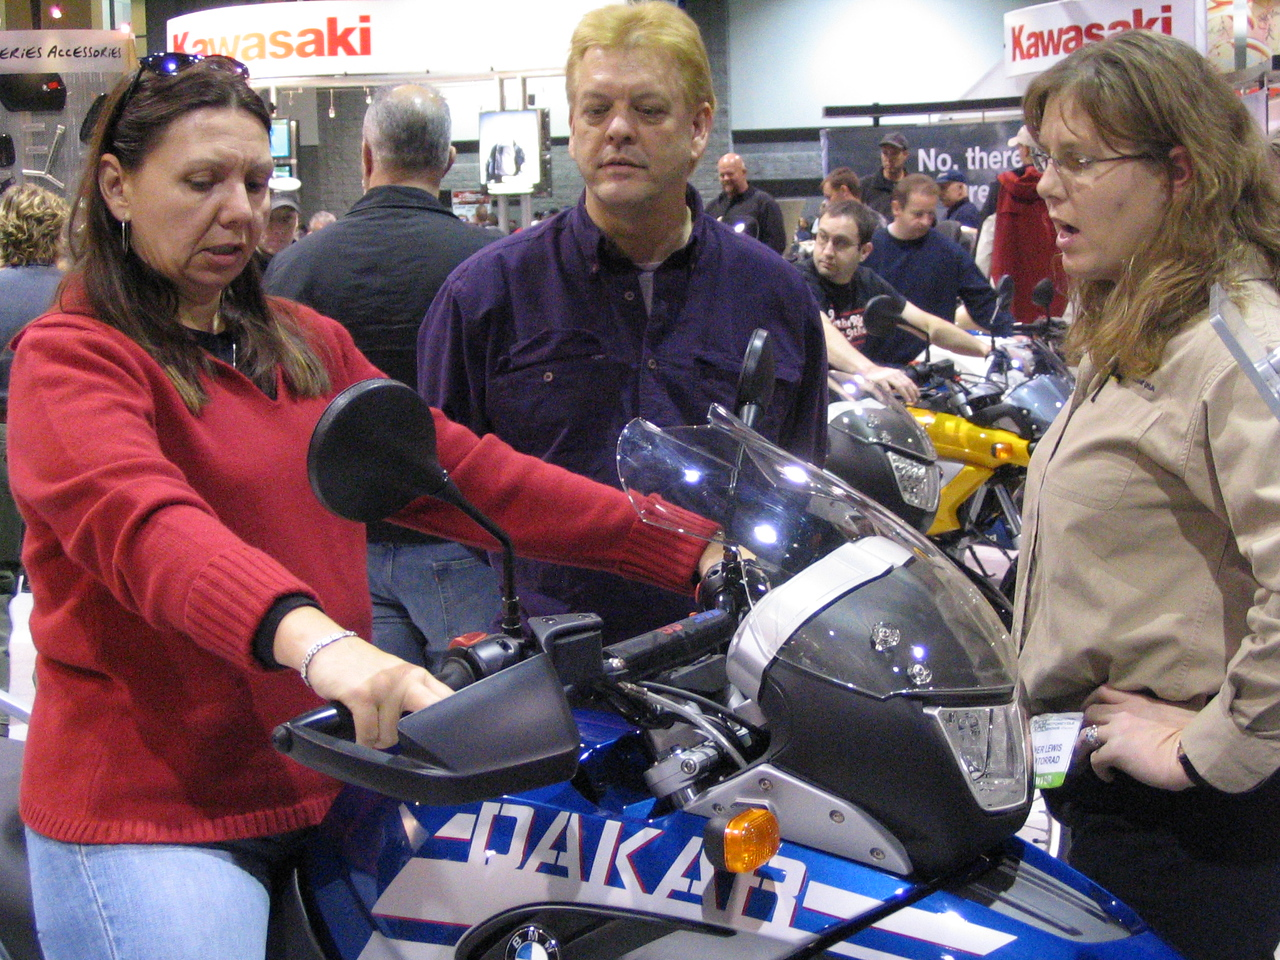 On the bike she really wants, I think ... an F650 Dakar.